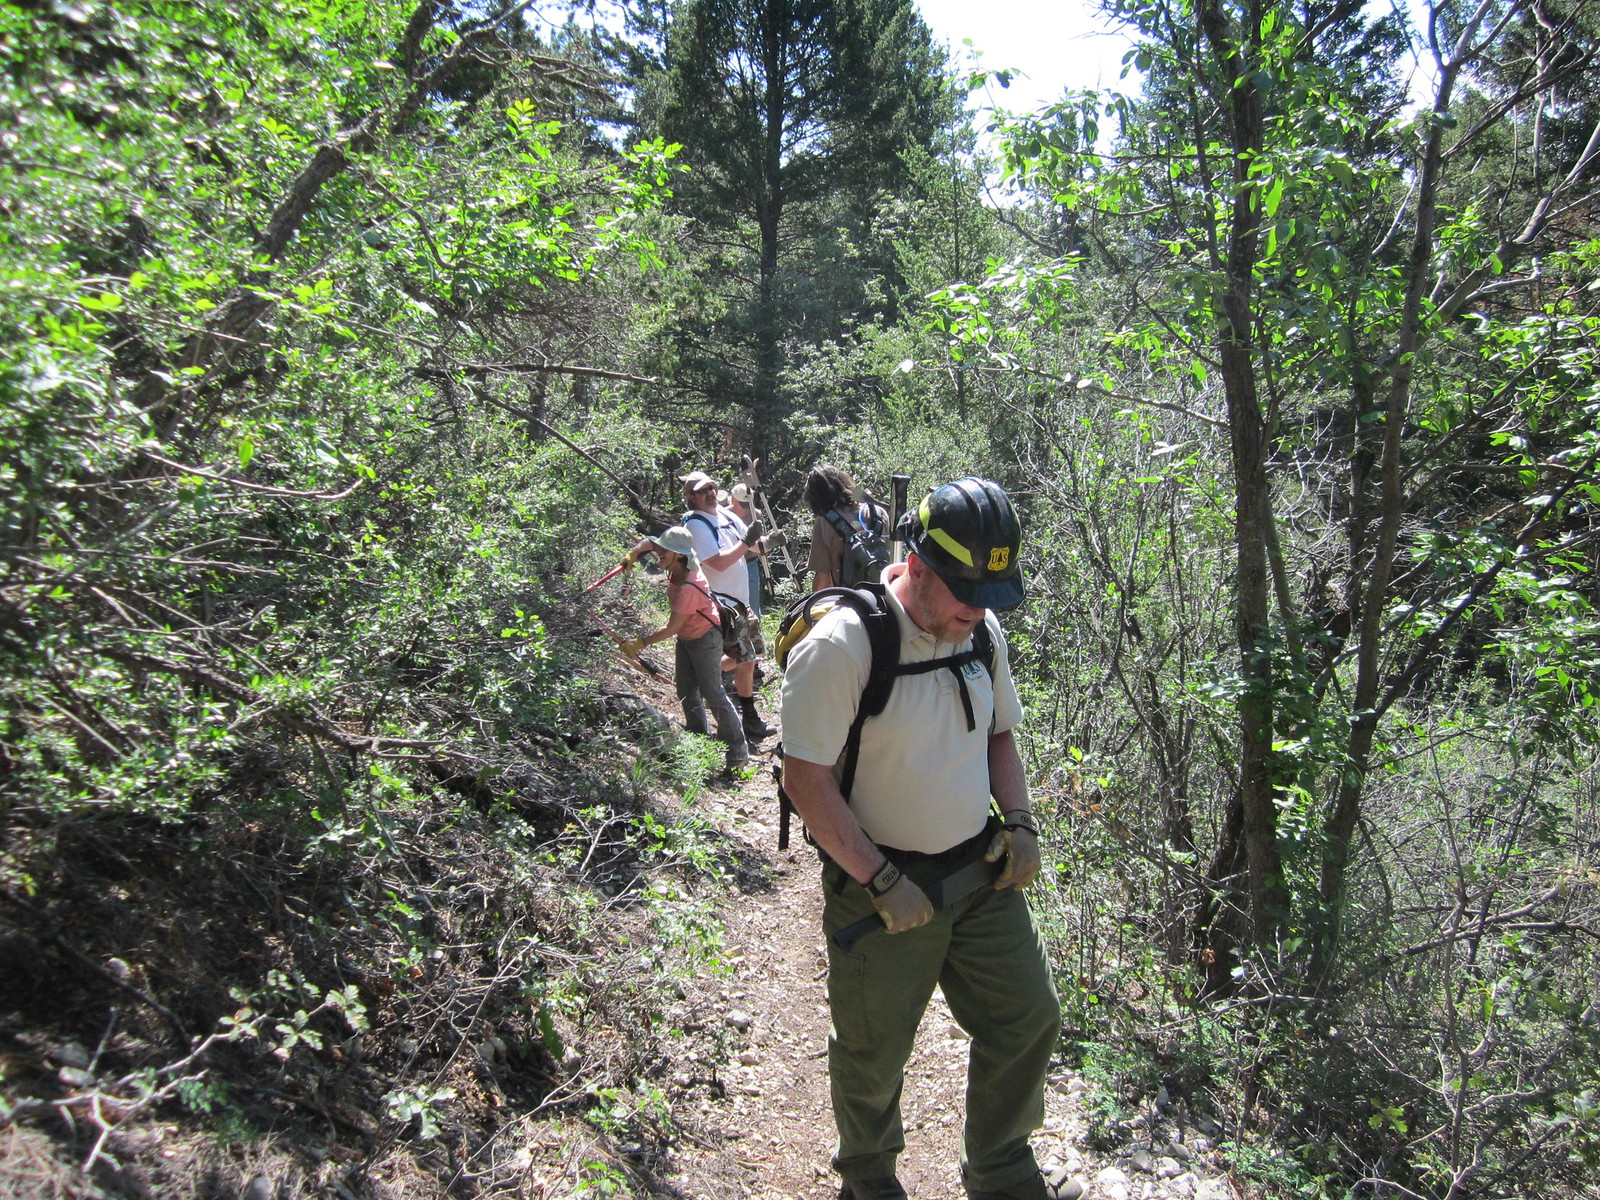 New Mexico Rails-to-Trails volunteer on the Rim trail